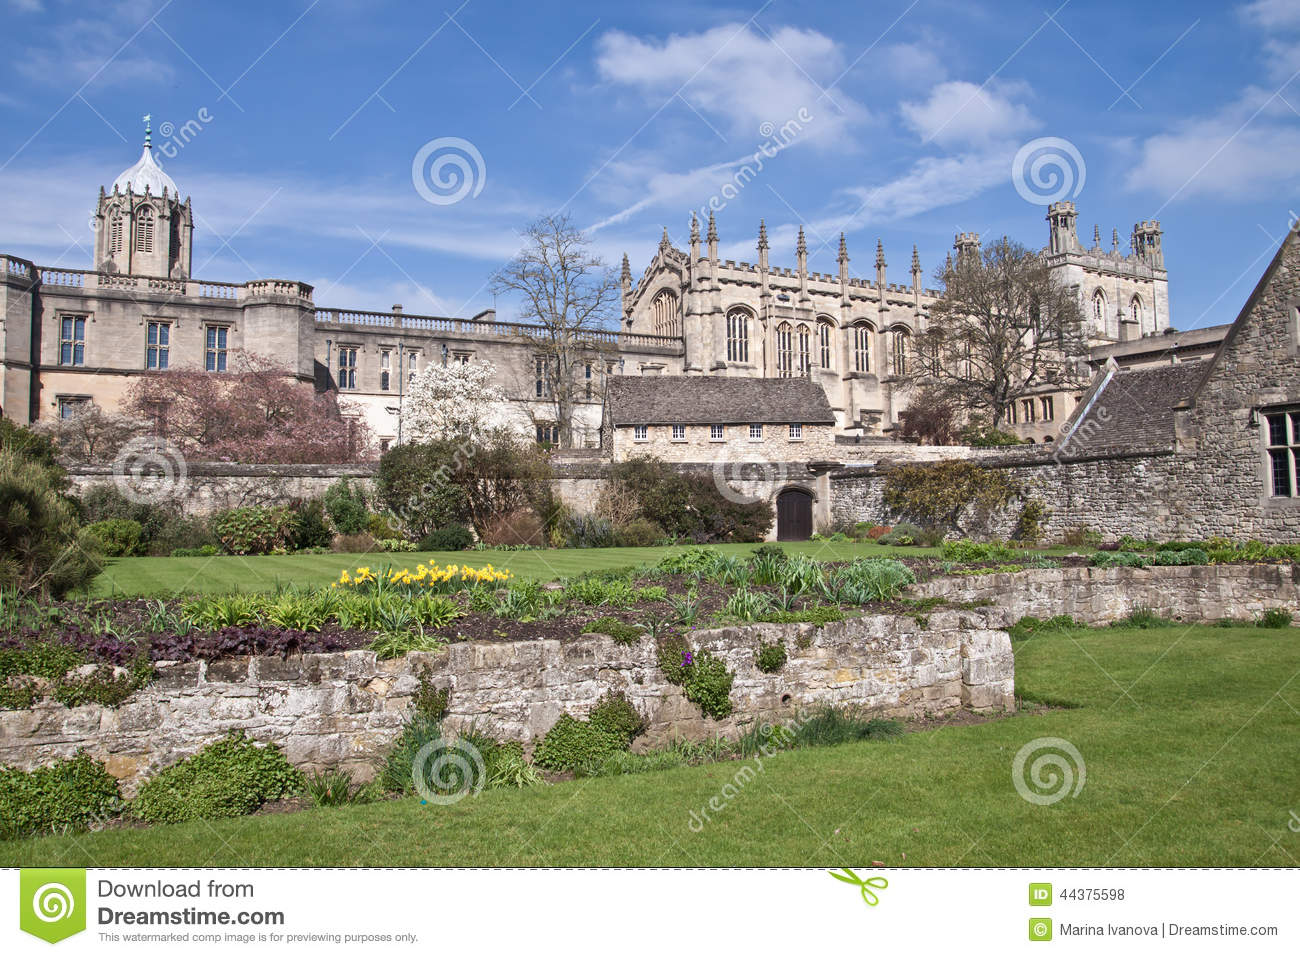 Oxford (MS) United States  City pictures : Christ Church College In Oxford Stock Photo Image: 44375598